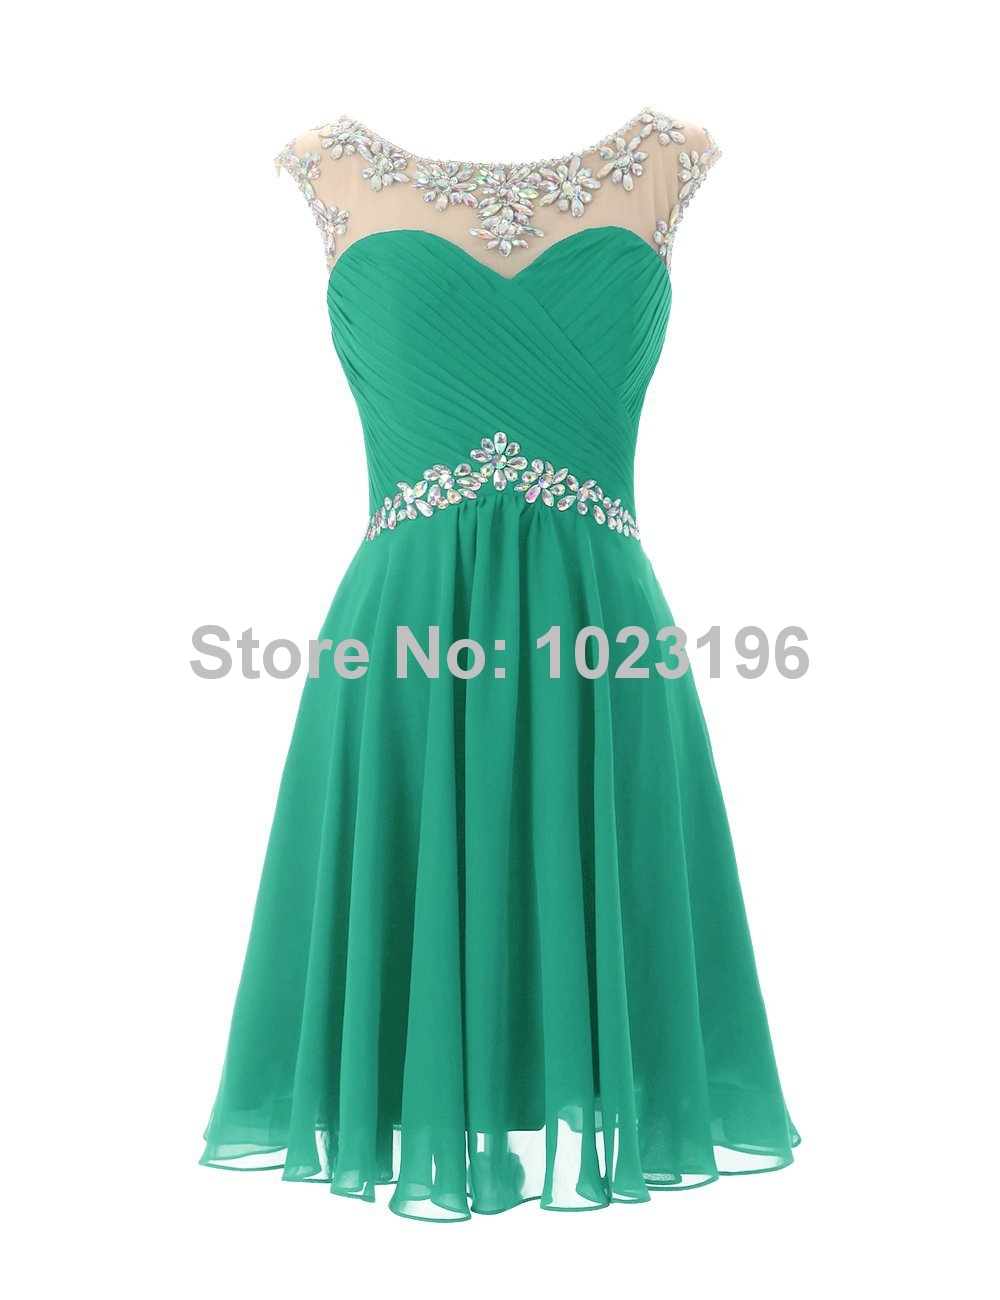 2017 Hot Sexy Short Mint Green Royal Crystal Chiffon Prom Dress ...